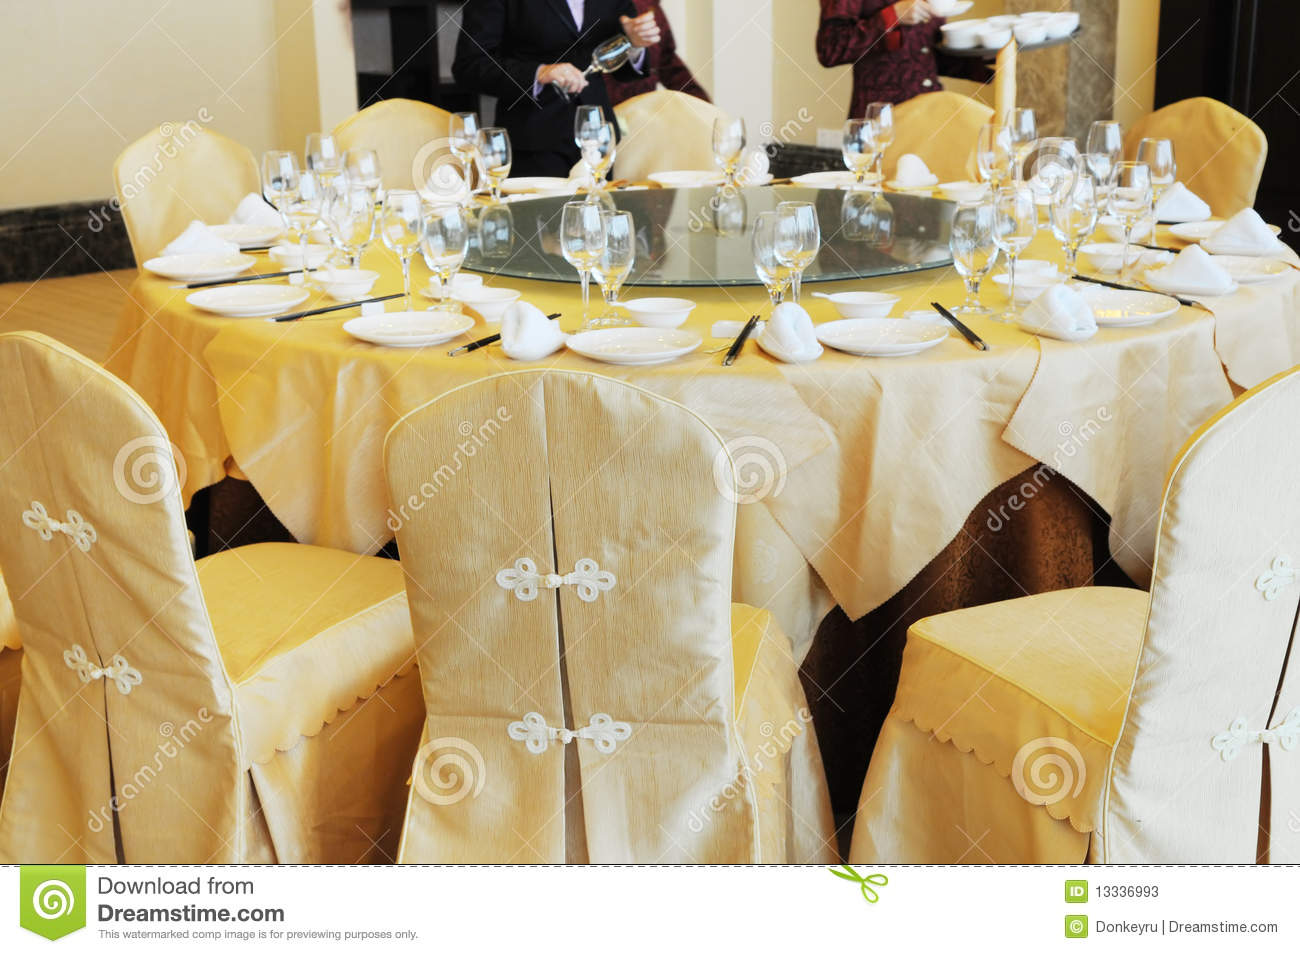 Restaurant table setup - Chinese Banquette Table Setting Stock Photos